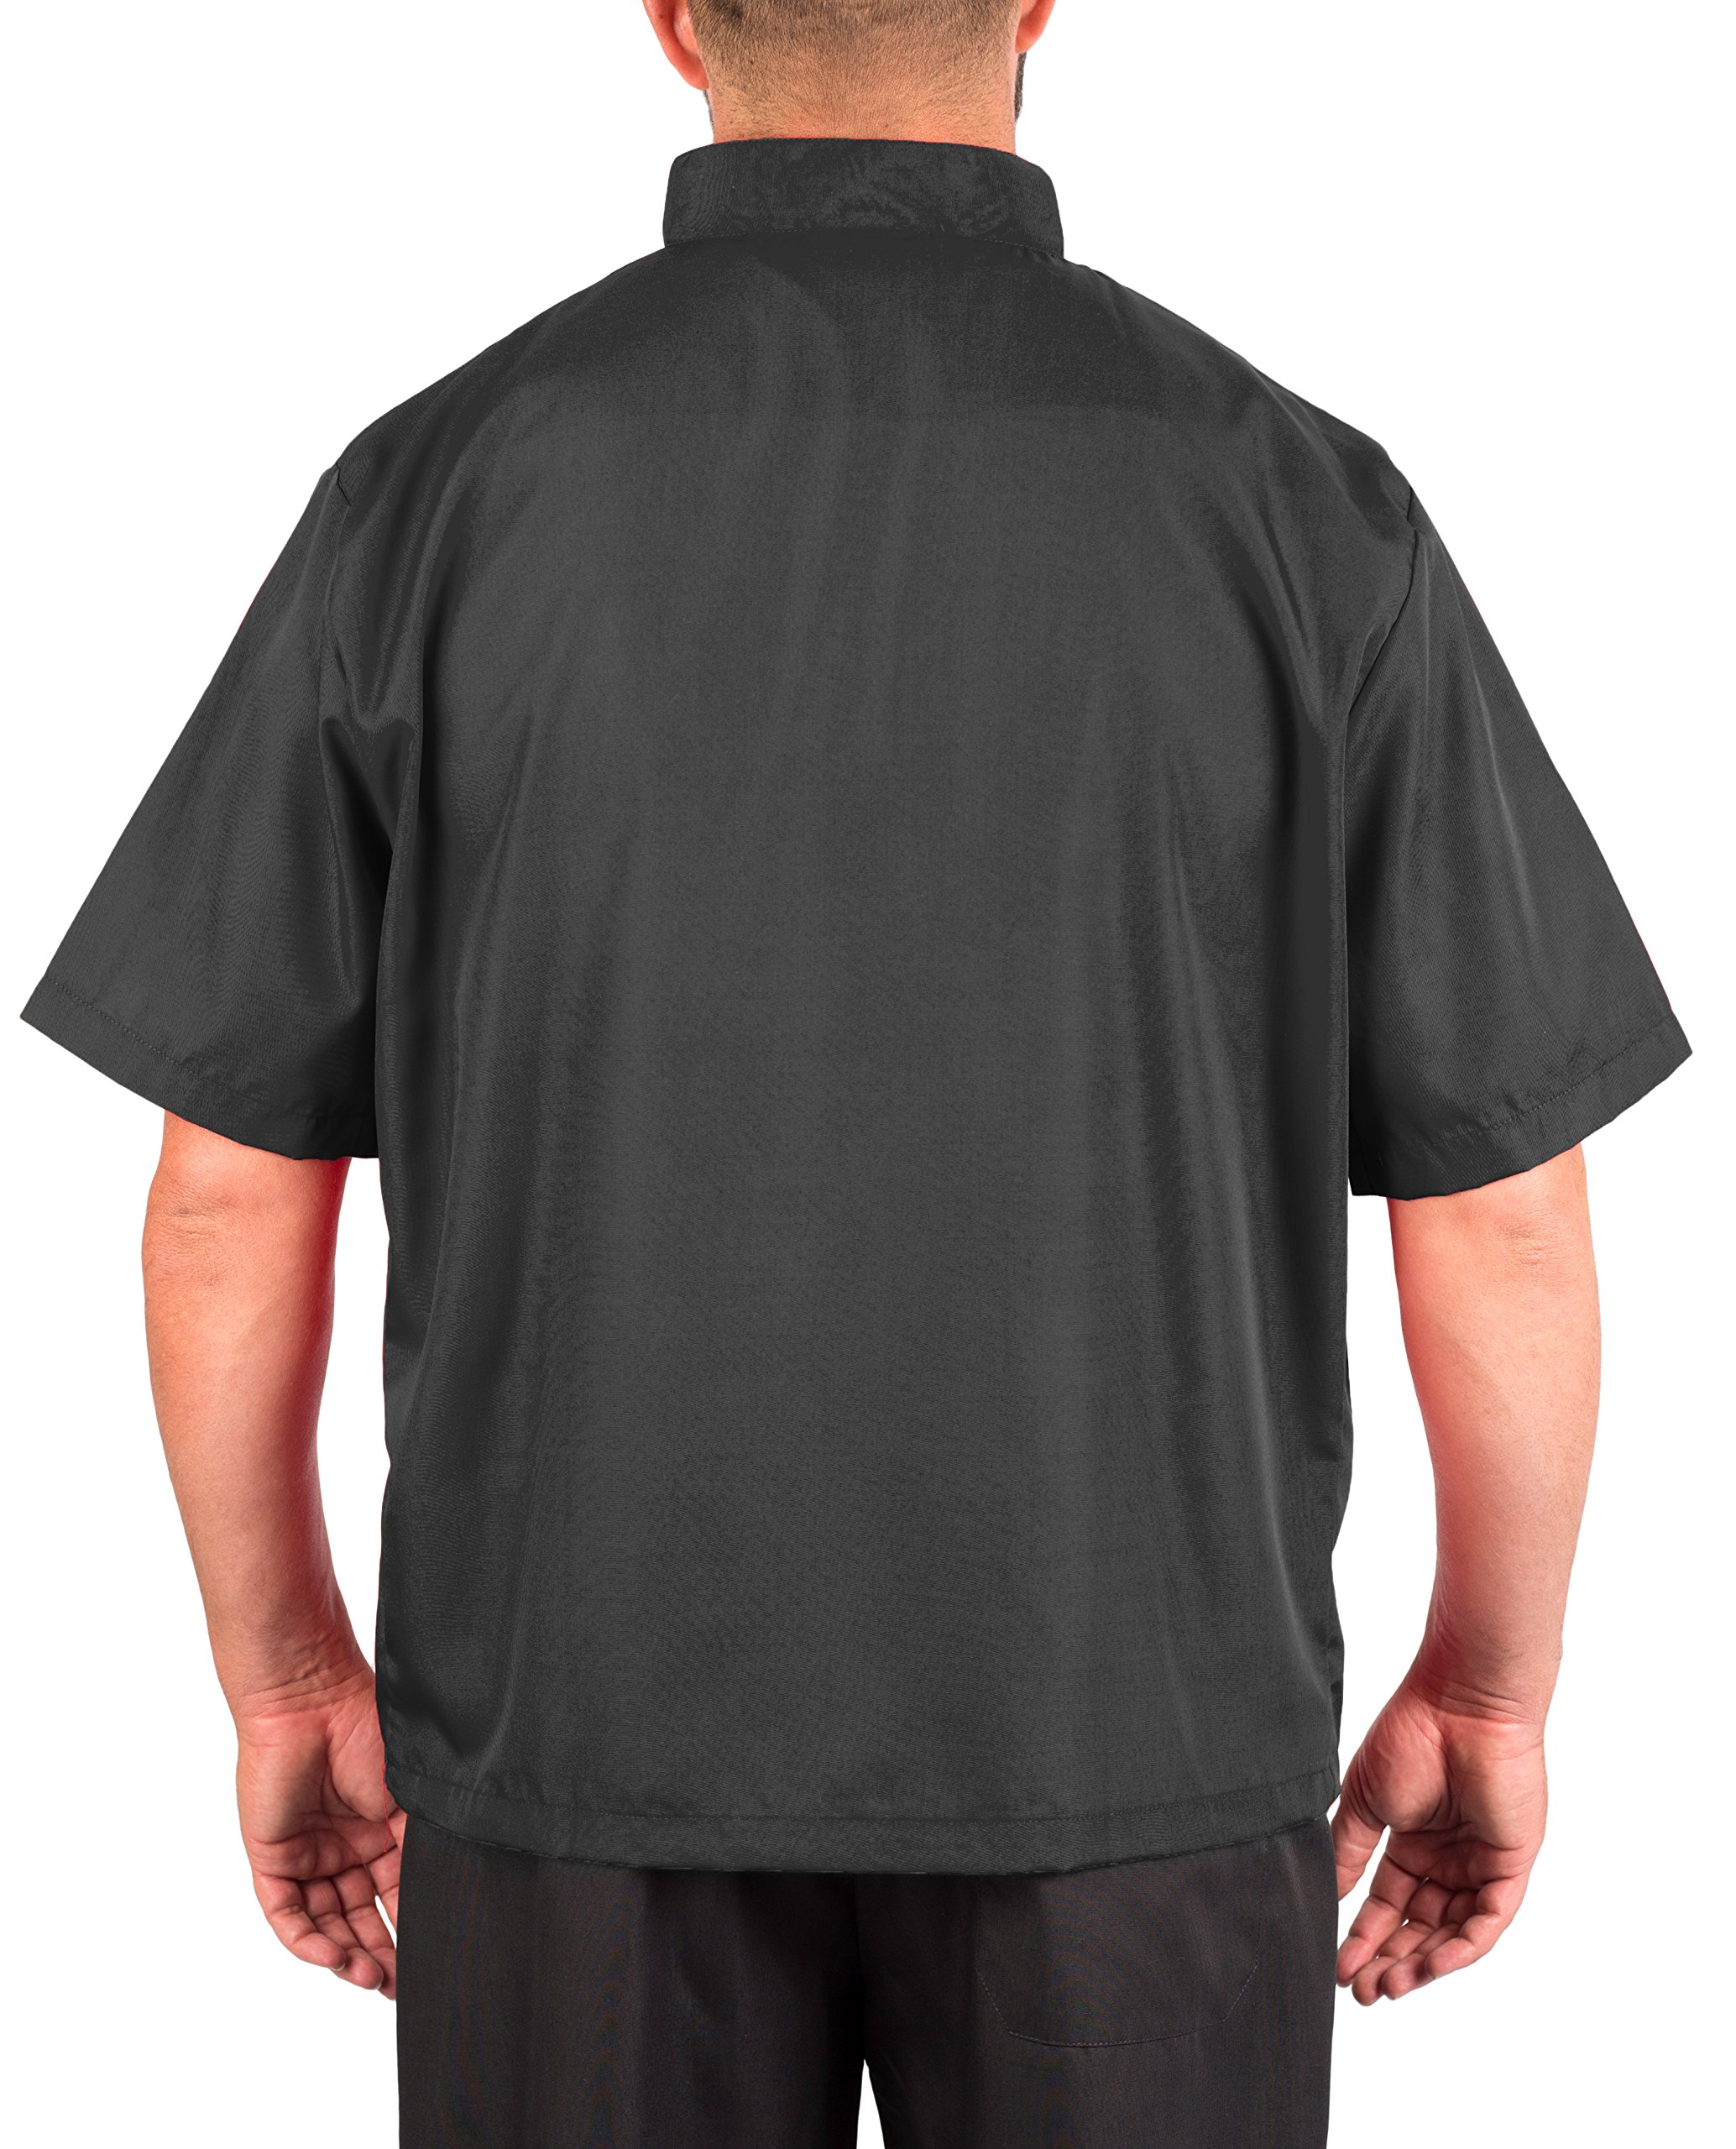 KNG Black Lightweight Short Sleeve Chef Coat by KNG (Image #2)